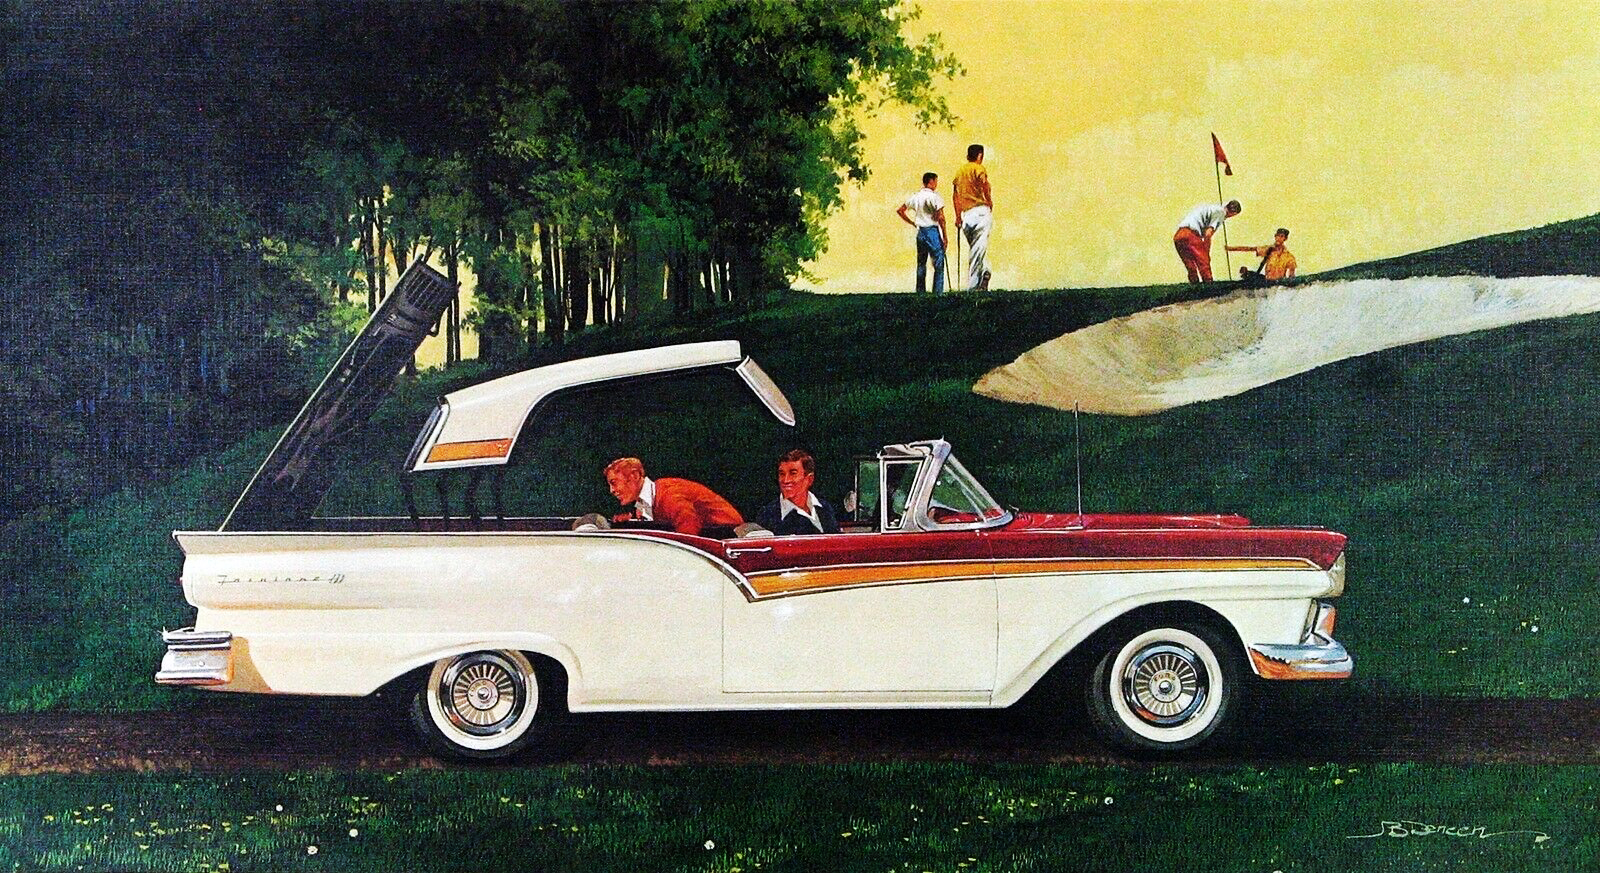 1957. Ford Skyliner. Illustrated by James B. Deneen